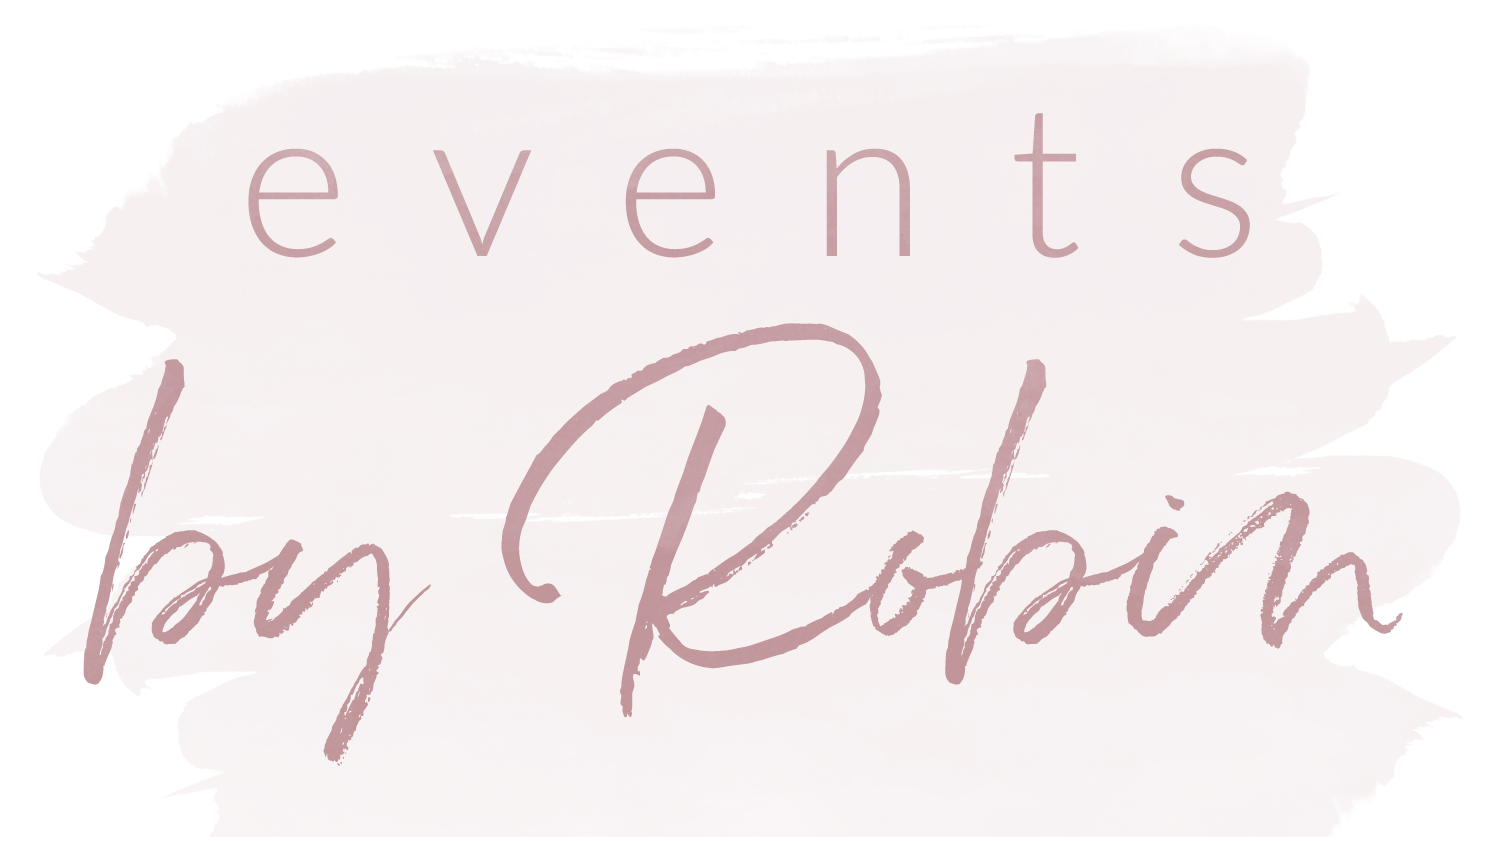 Events By Robin